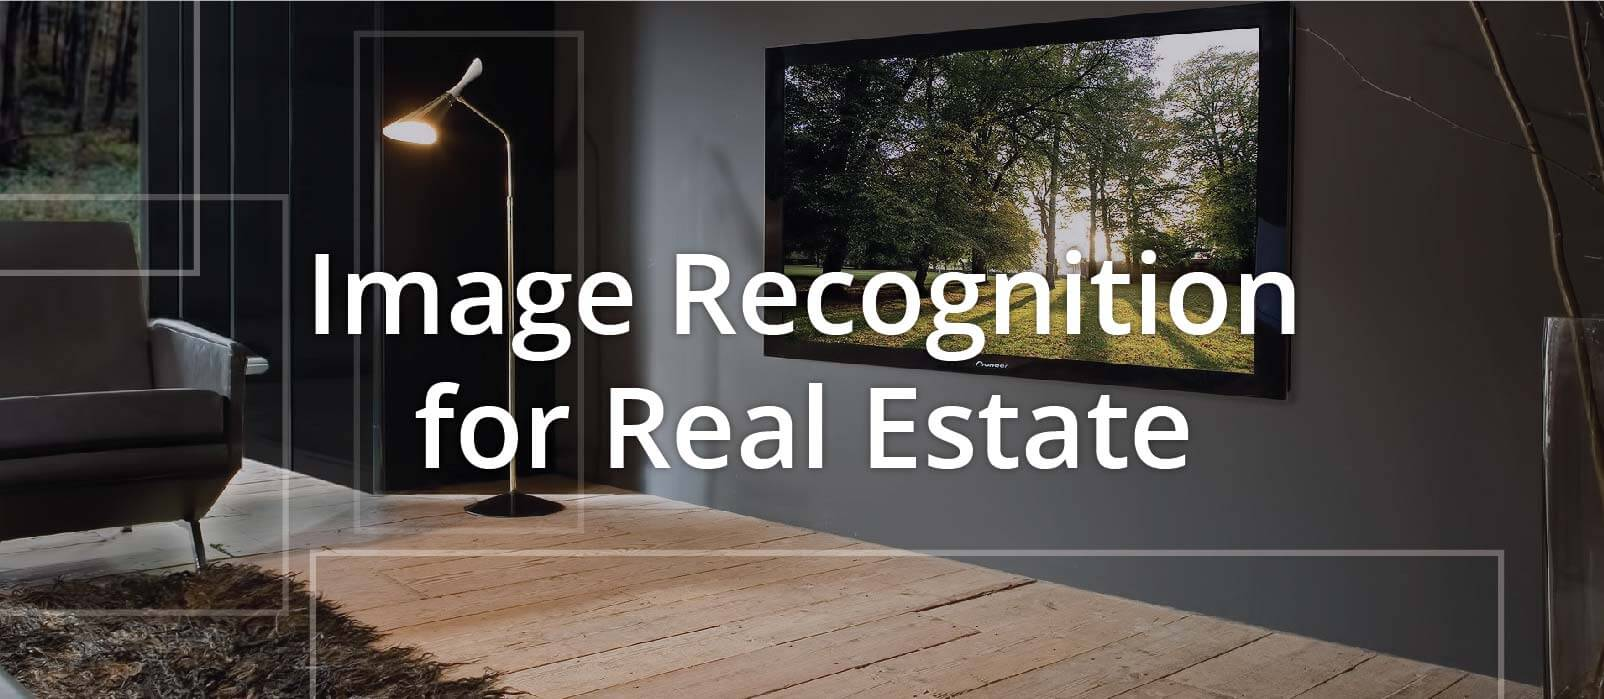 Image Recognition With An Eye for Real Estate